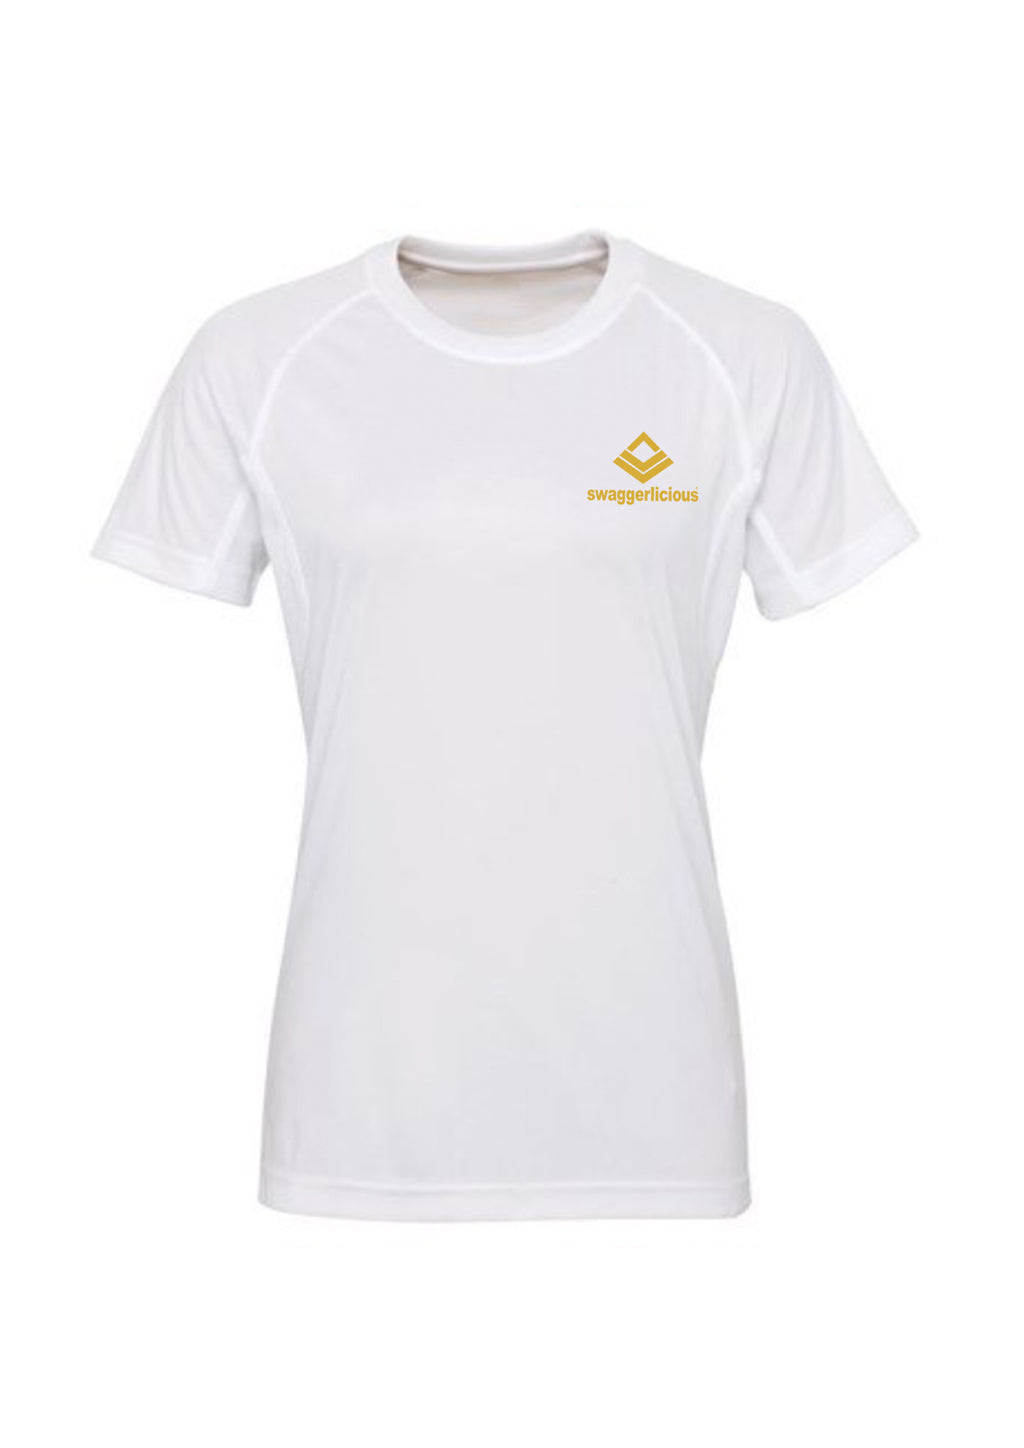 Swaggerlicious White Active Sports Tee with Gold Logo